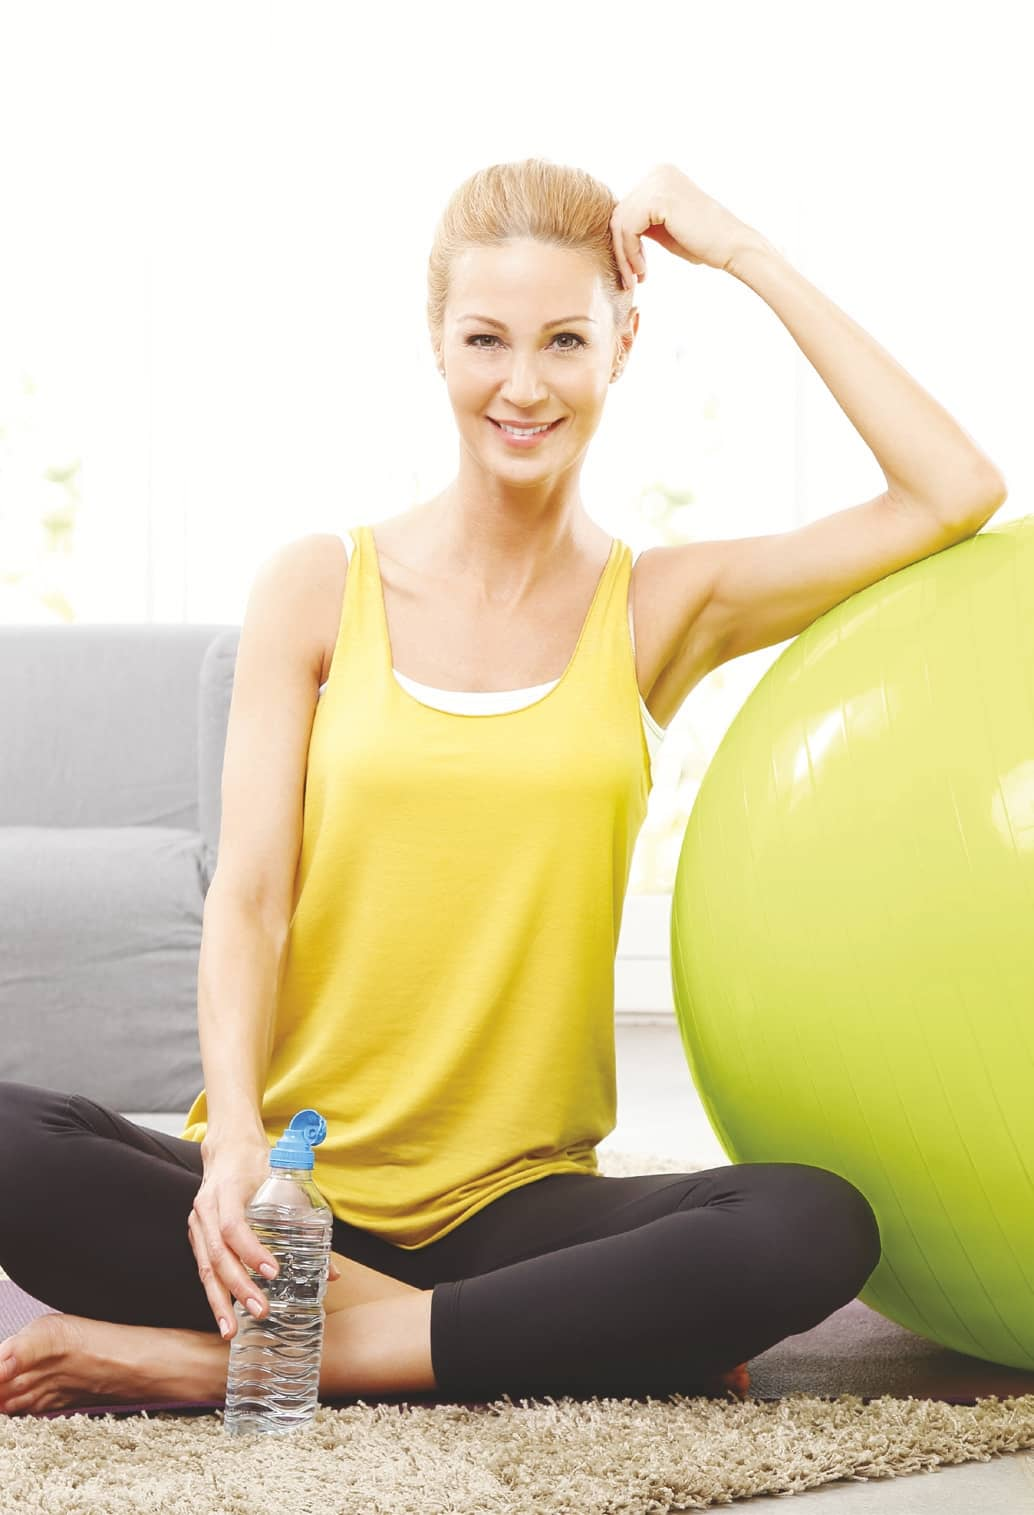 4 TIPS FOR FITNESS WHILE QUARANTINED